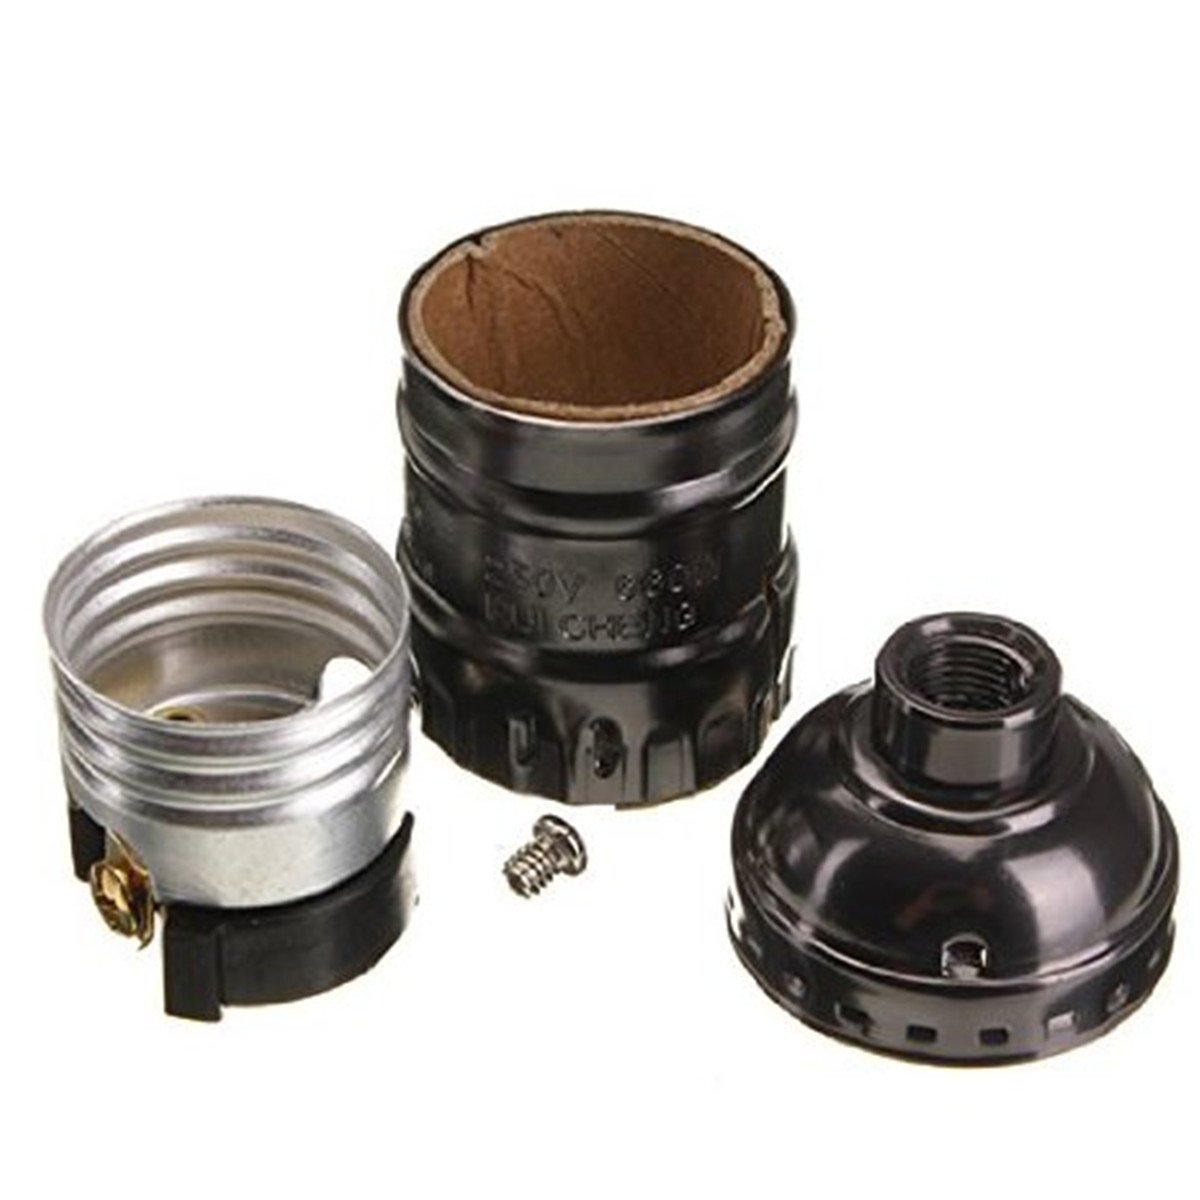 Edison Vintage Lamp Light Base Socket Holder Adapter E27 Bulbs Black Hy Ebay